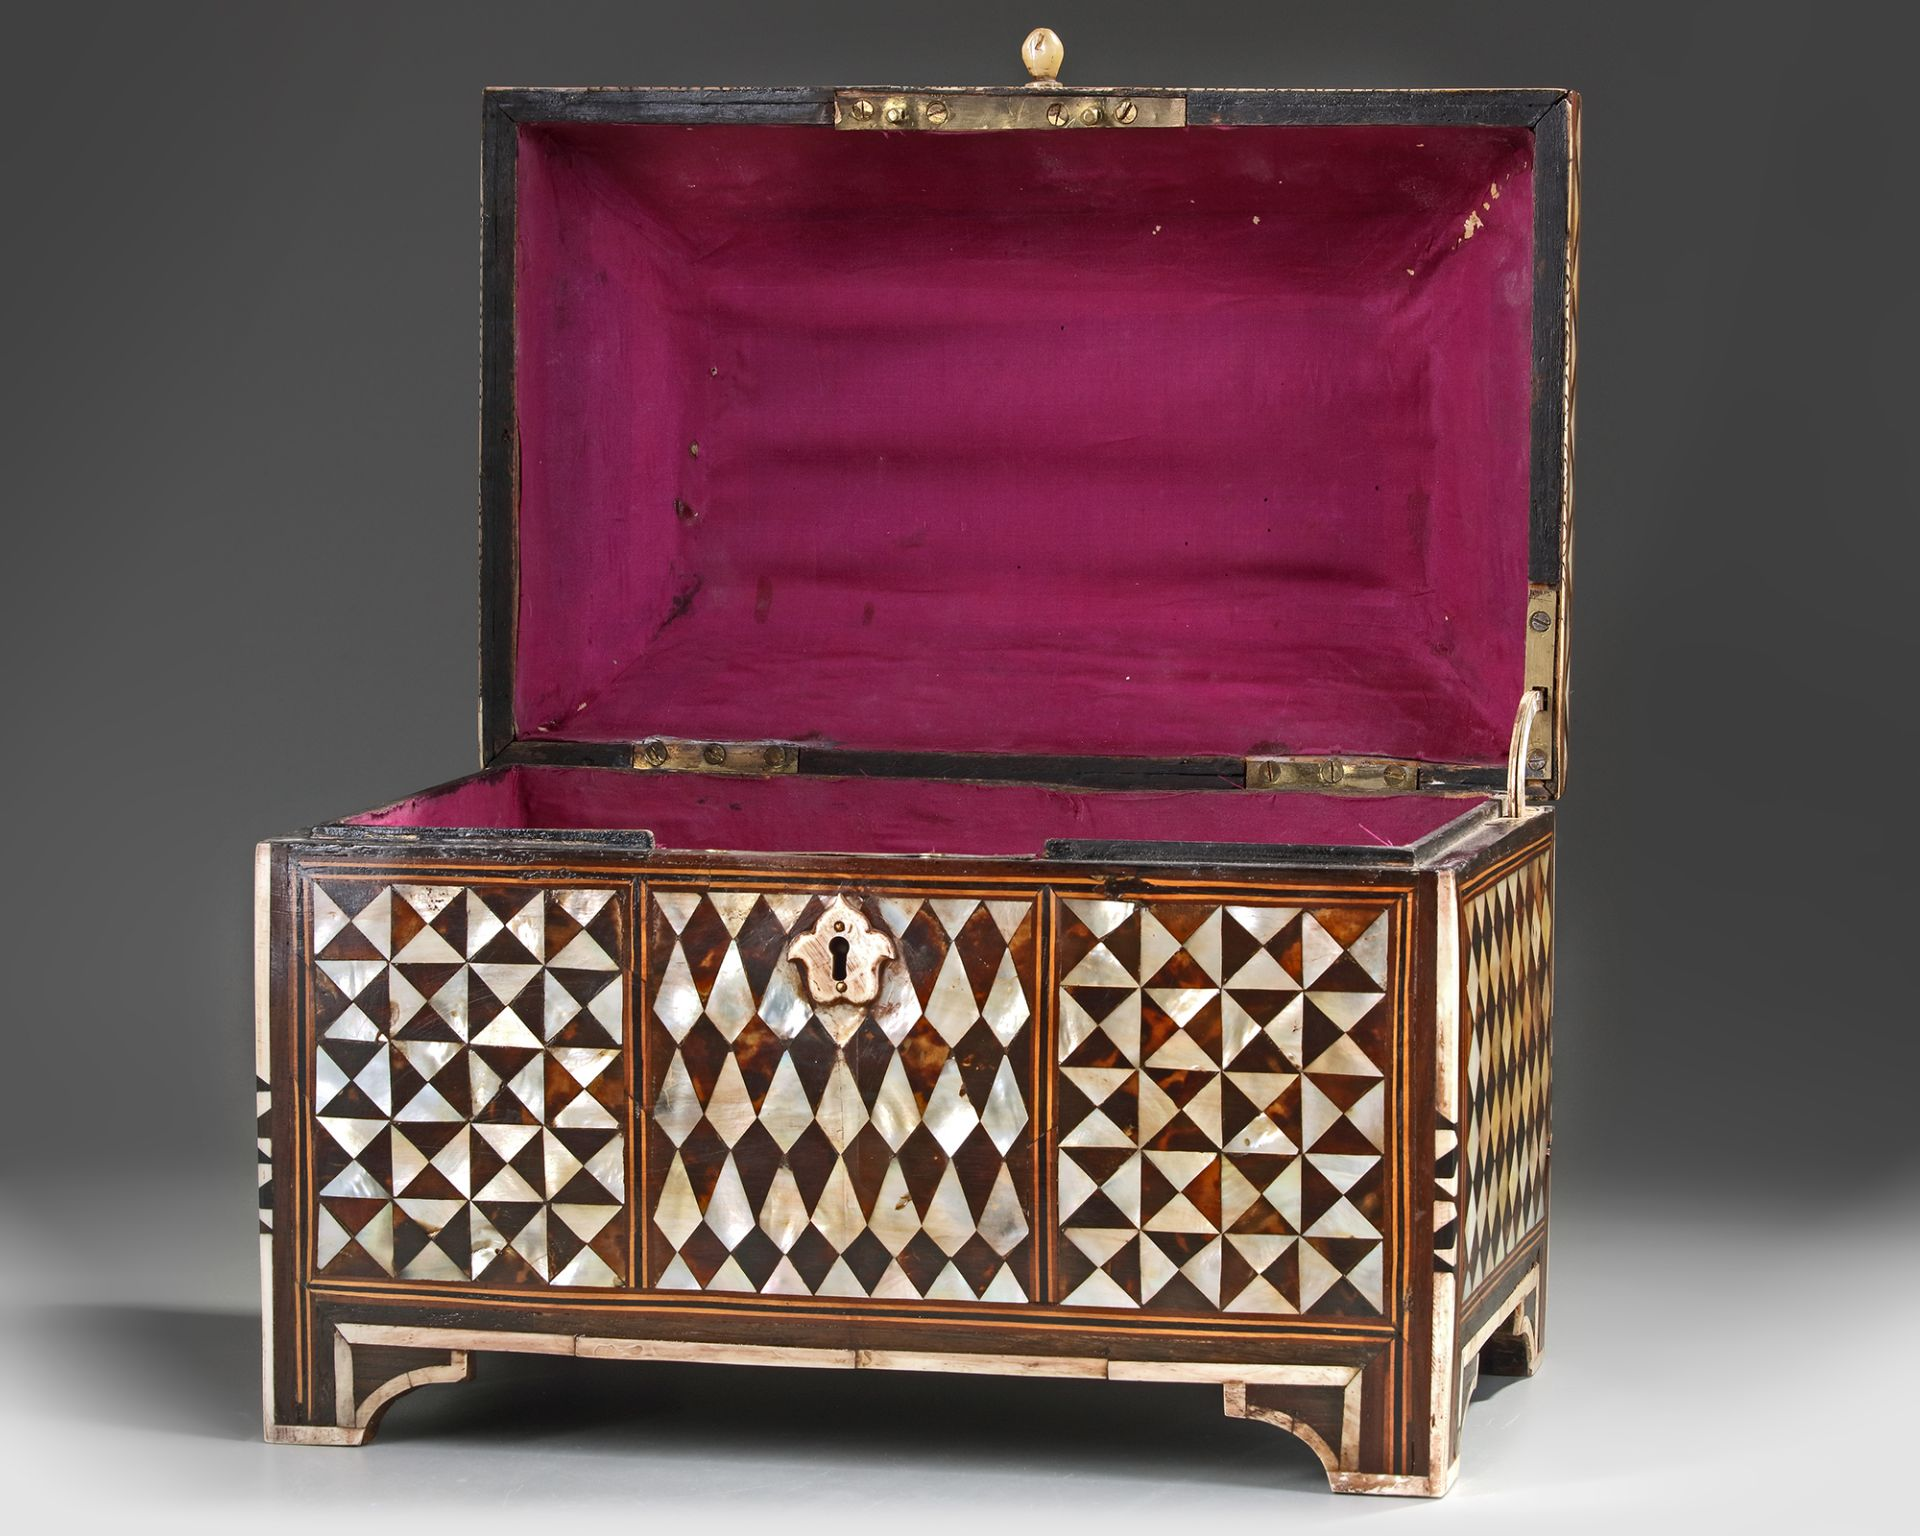 AN OTTOMAN MOTHER-OF-PEARL AND TORTOISESHELL INLAID CHEST - Bild 2 aus 3